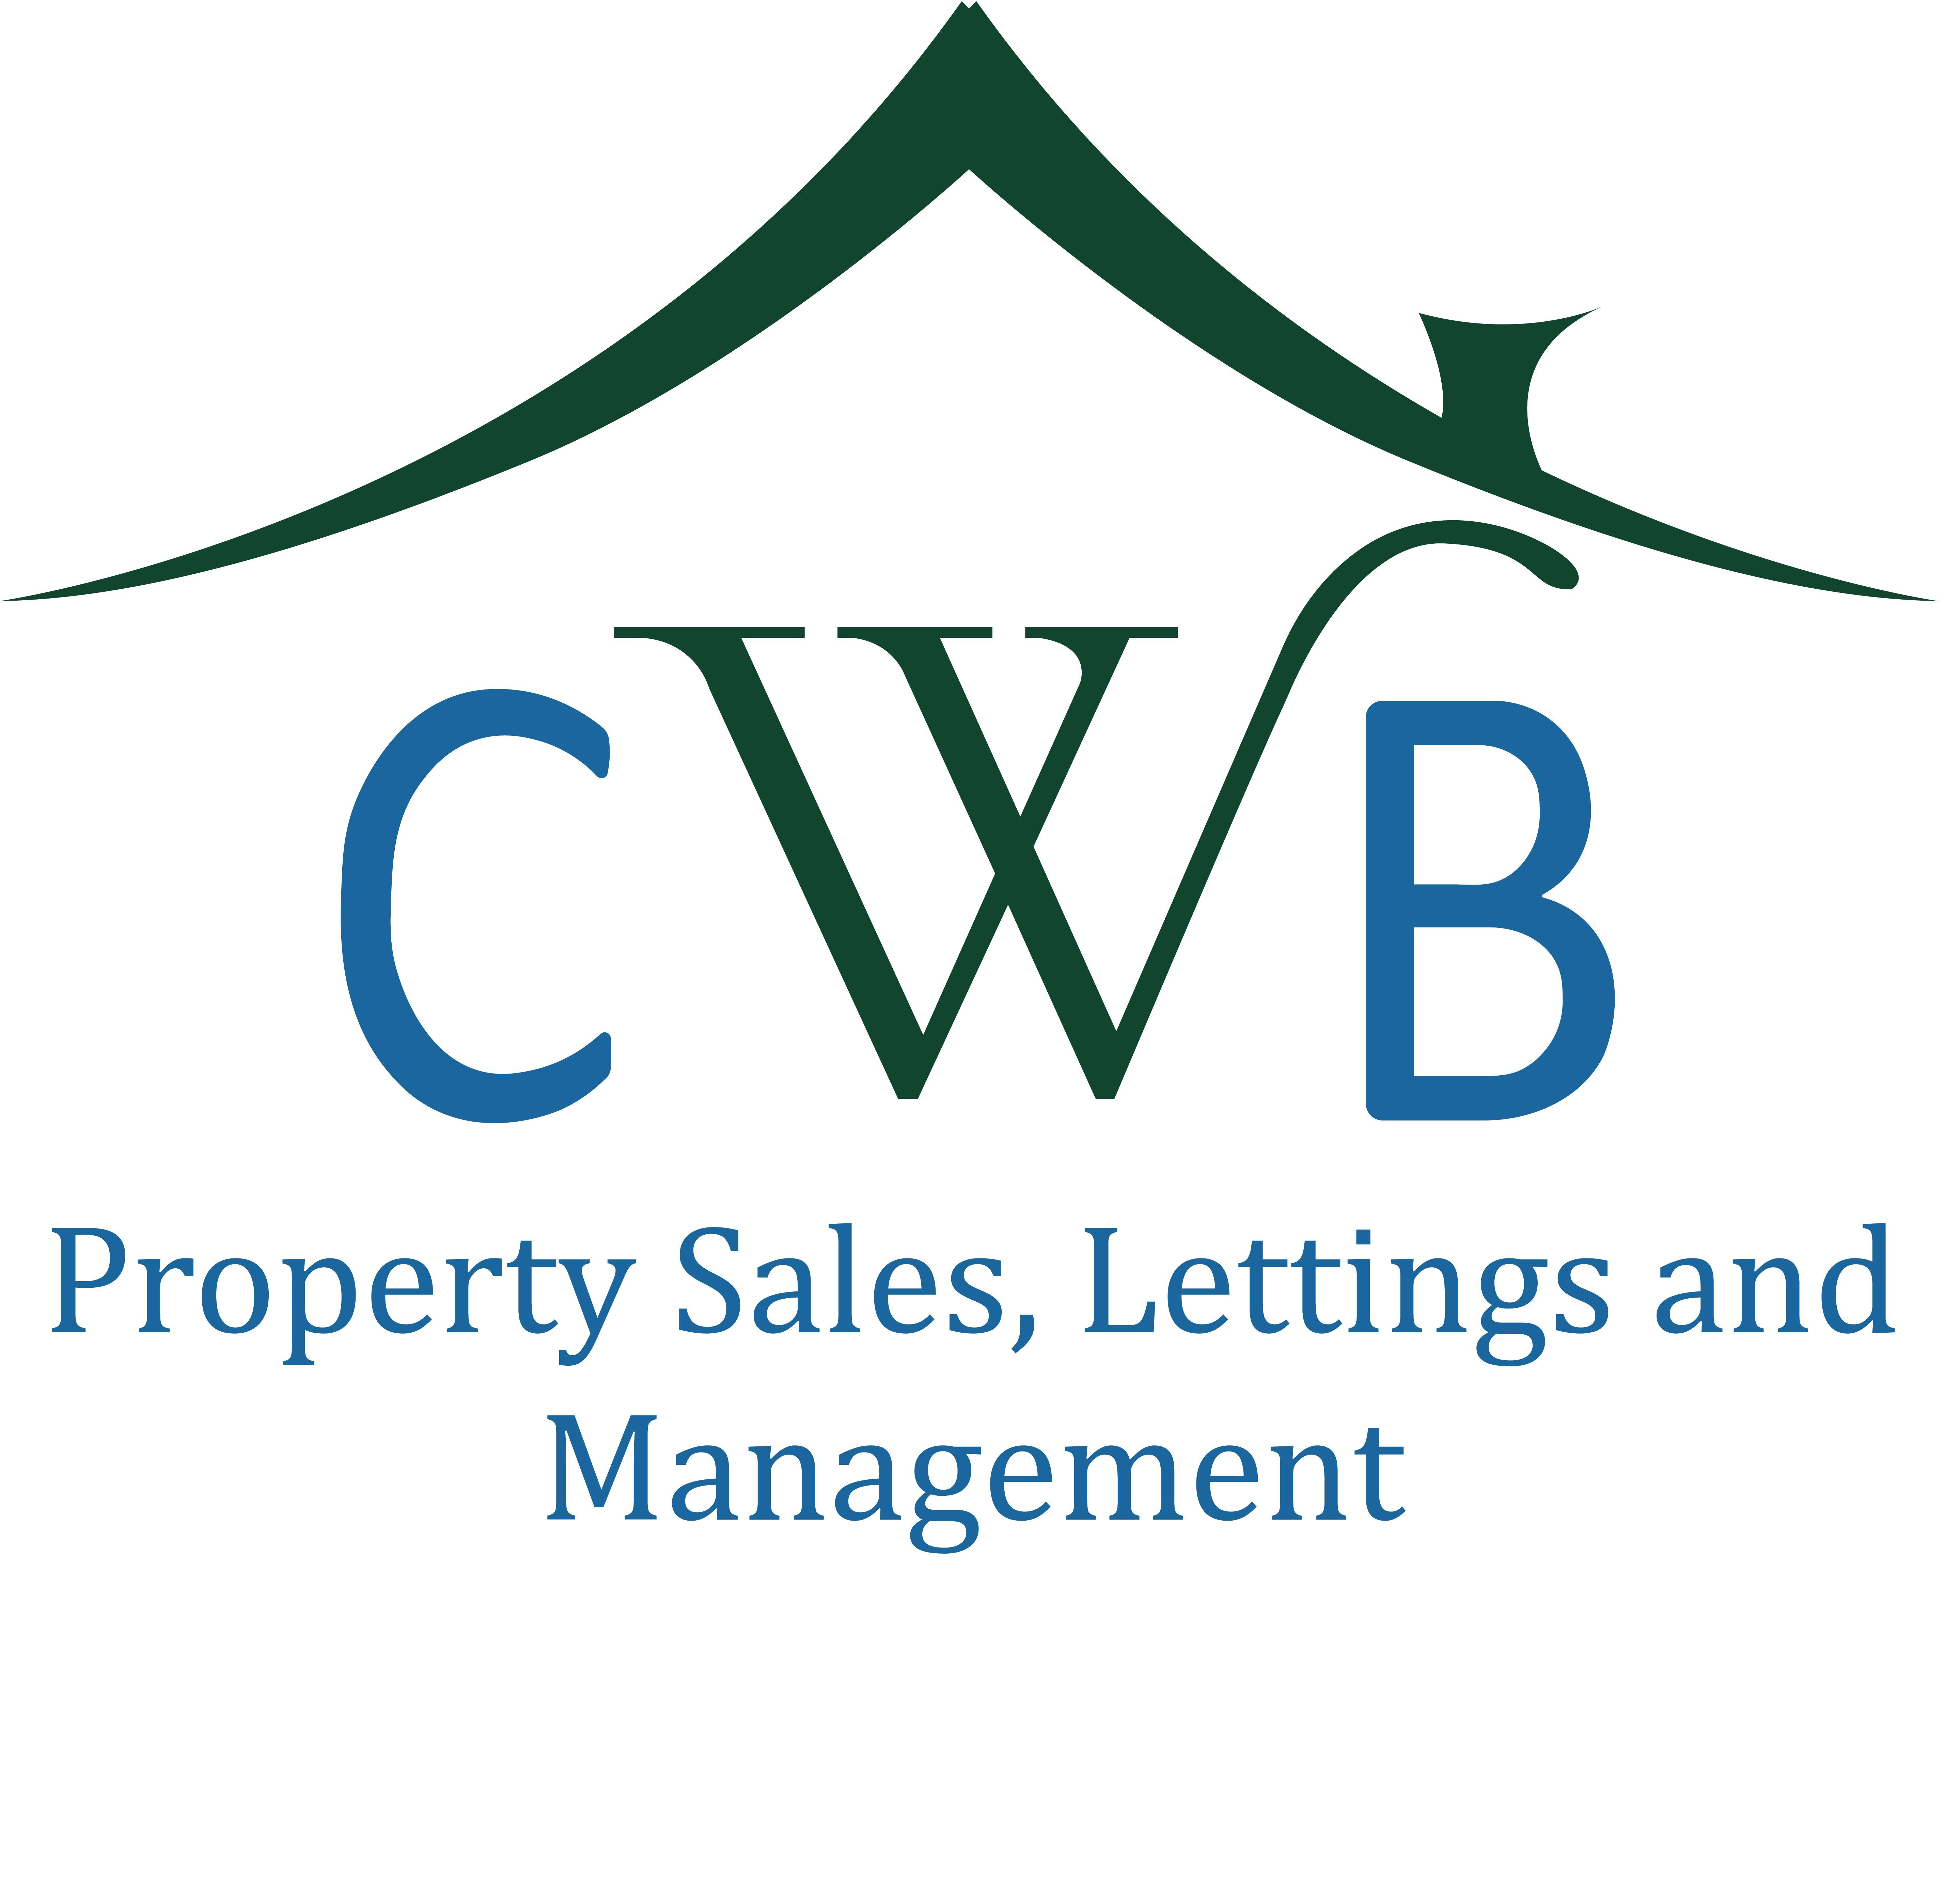 Read cwb property Reviews